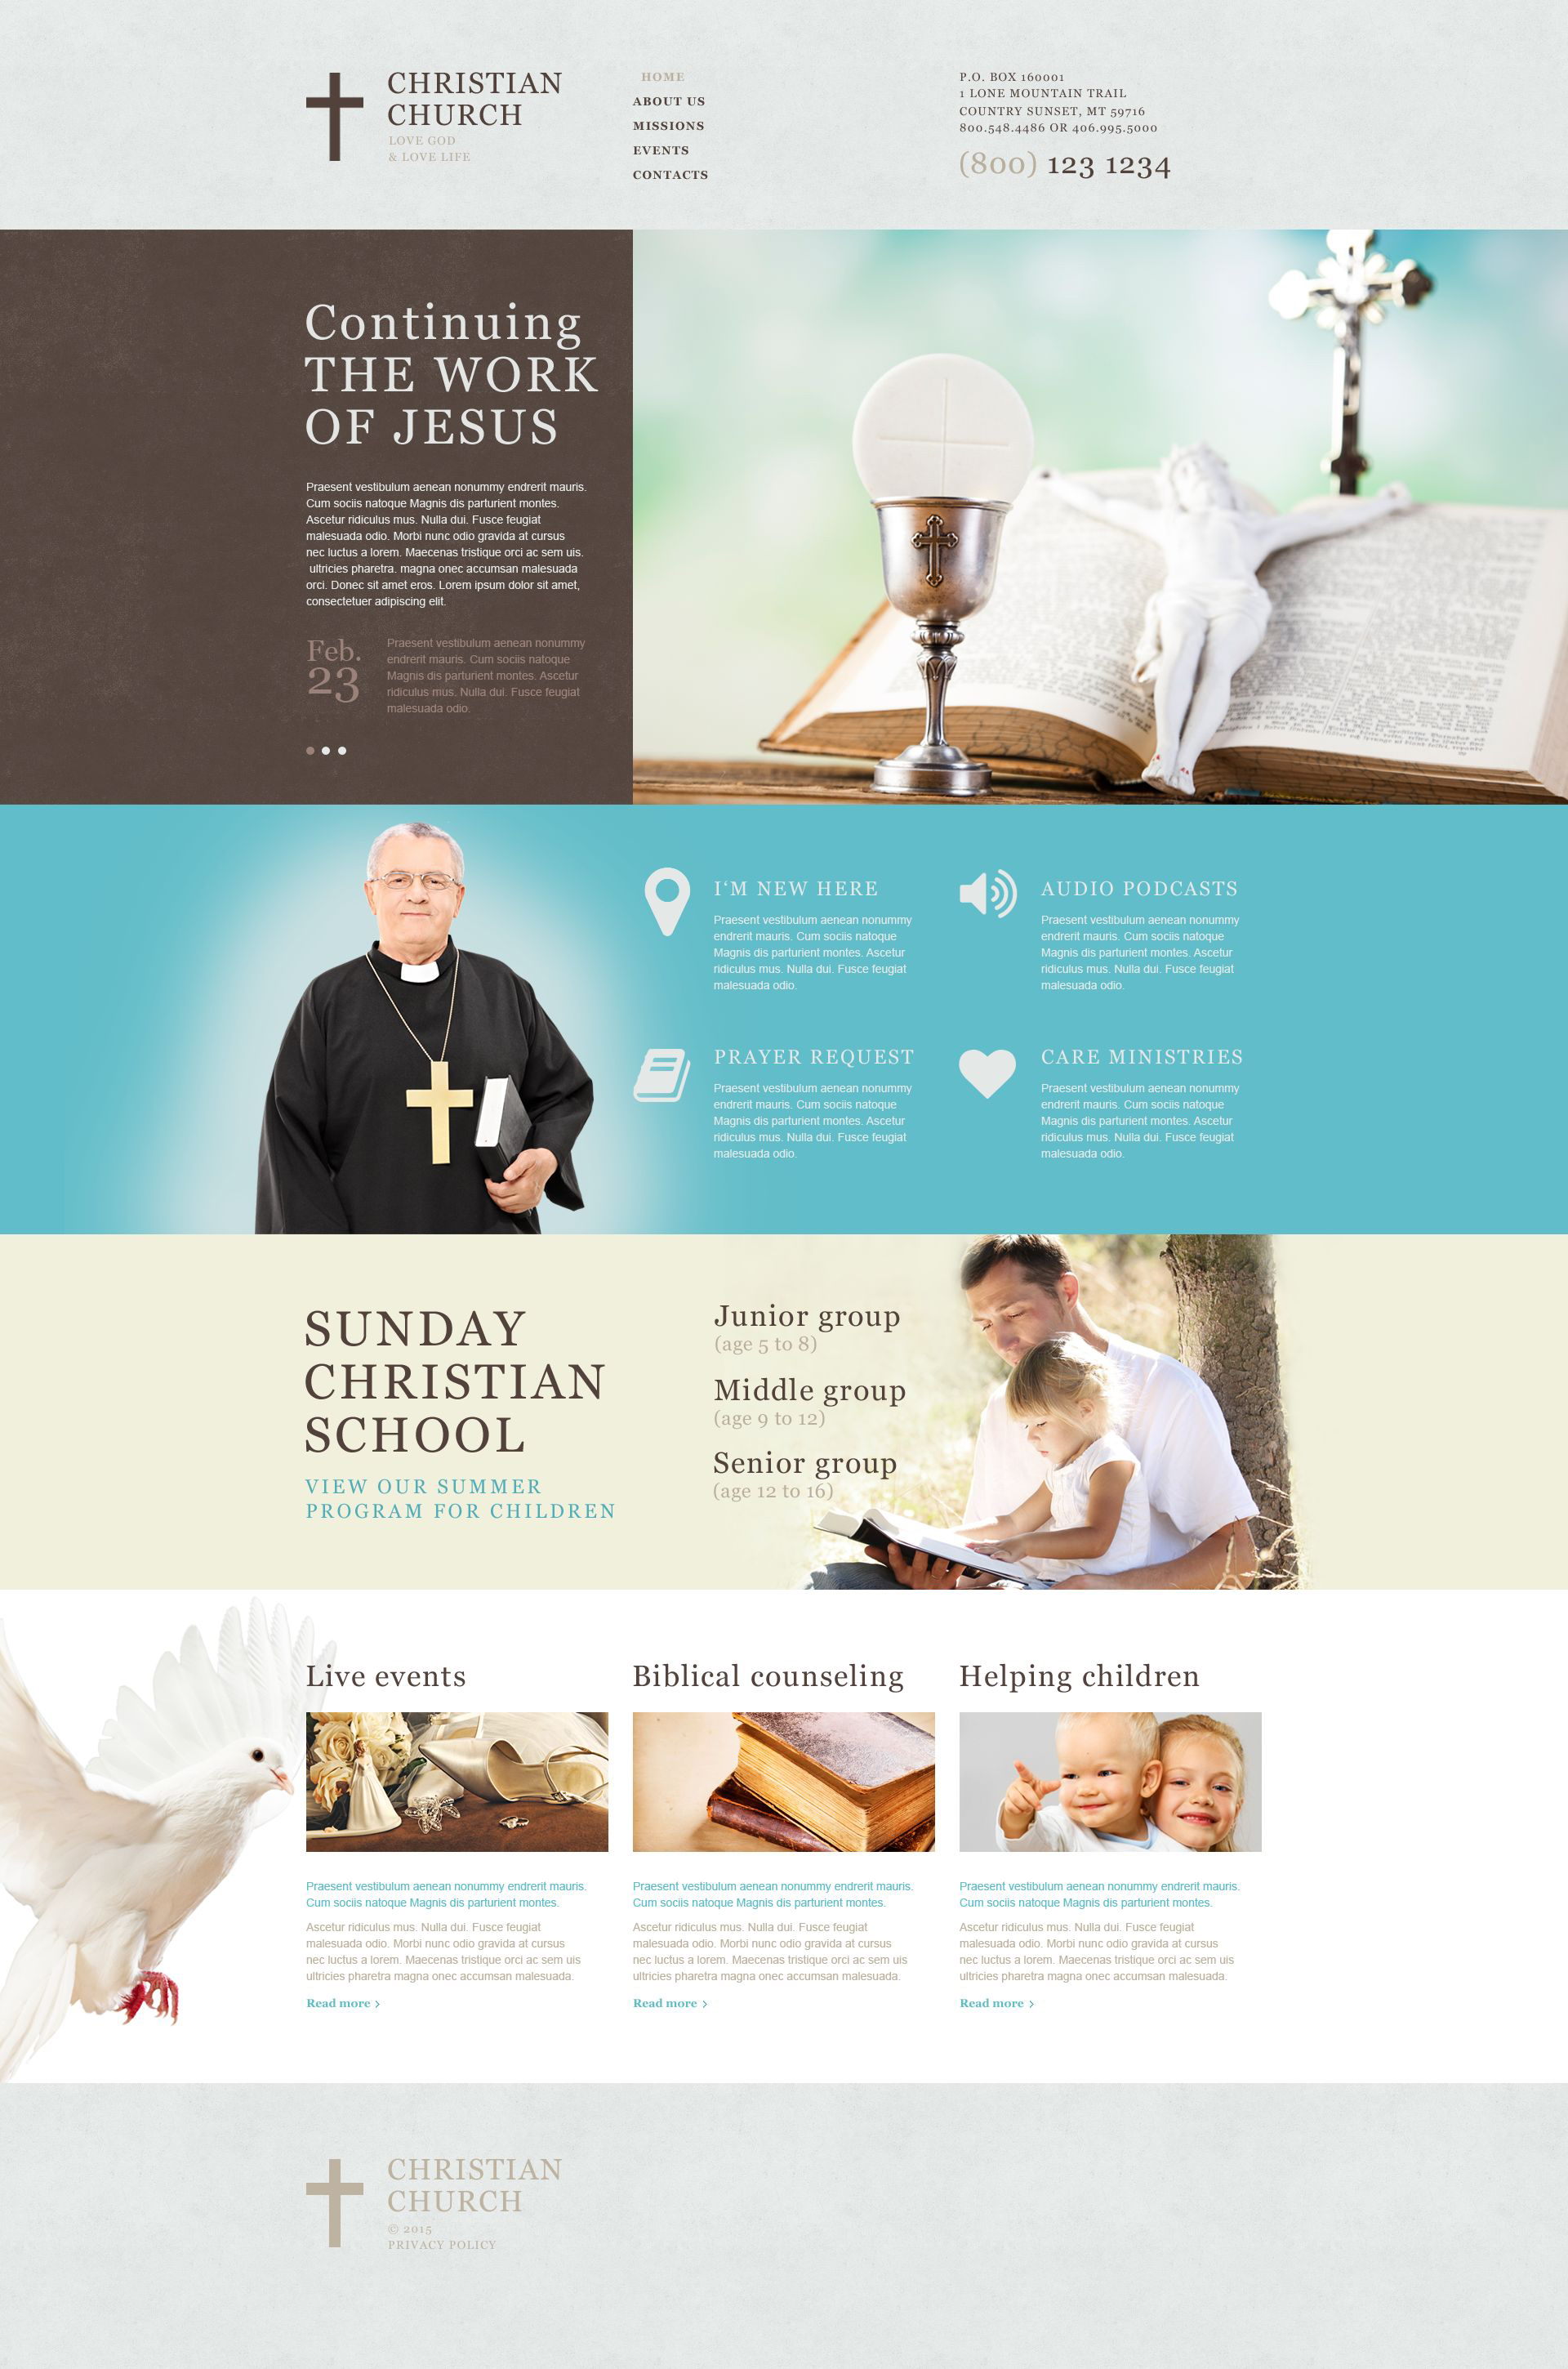 The Church Religious Muse Templates Design 53126, one of the best Muse templates of its kind (religious, most popular), also known as church religious Muse template, religion Muse template, God family care Muse template, education Muse template, Bible mission Muse template, community Muse template, sermon Muse template, priest Muse template, clergyman Muse template, choir Muse template, health Muse template, Sunday school Muse template, archive Muse template, credence Muse template, faith Muse template, belief in God kindness Muse template, confession Muse template, homily Muse template, sermon Muse template, help Muse template, support Muse template, Christian catholic Muse template, prayer and related with church religious, religion, God family care, education, Bible mission, community, sermon, priest, clergyman, choir, health, Sunday school, archive, credence, faith, belief in God kindness, confession, homily, sermon, help, support, Christian catholic, prayer, etc.